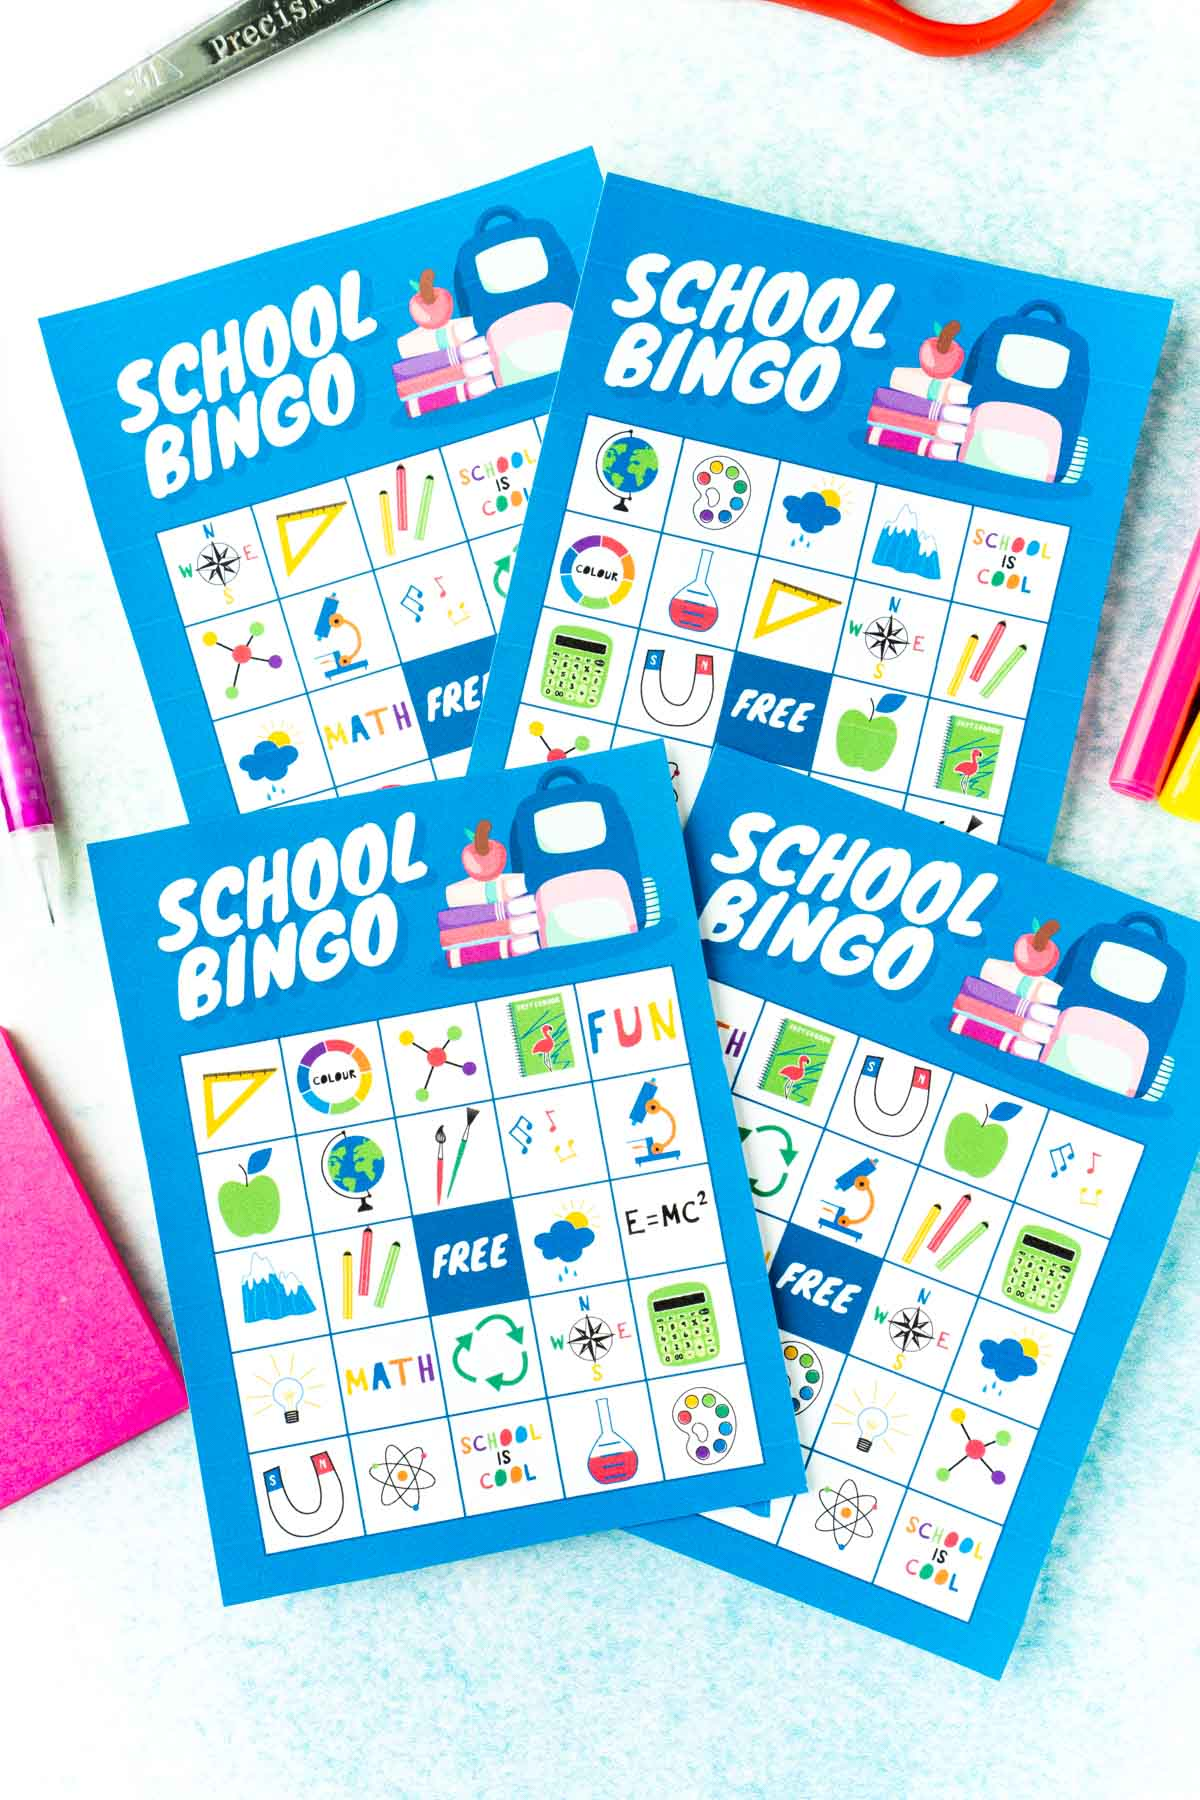 Four blue back to school bingo cards with school images on them